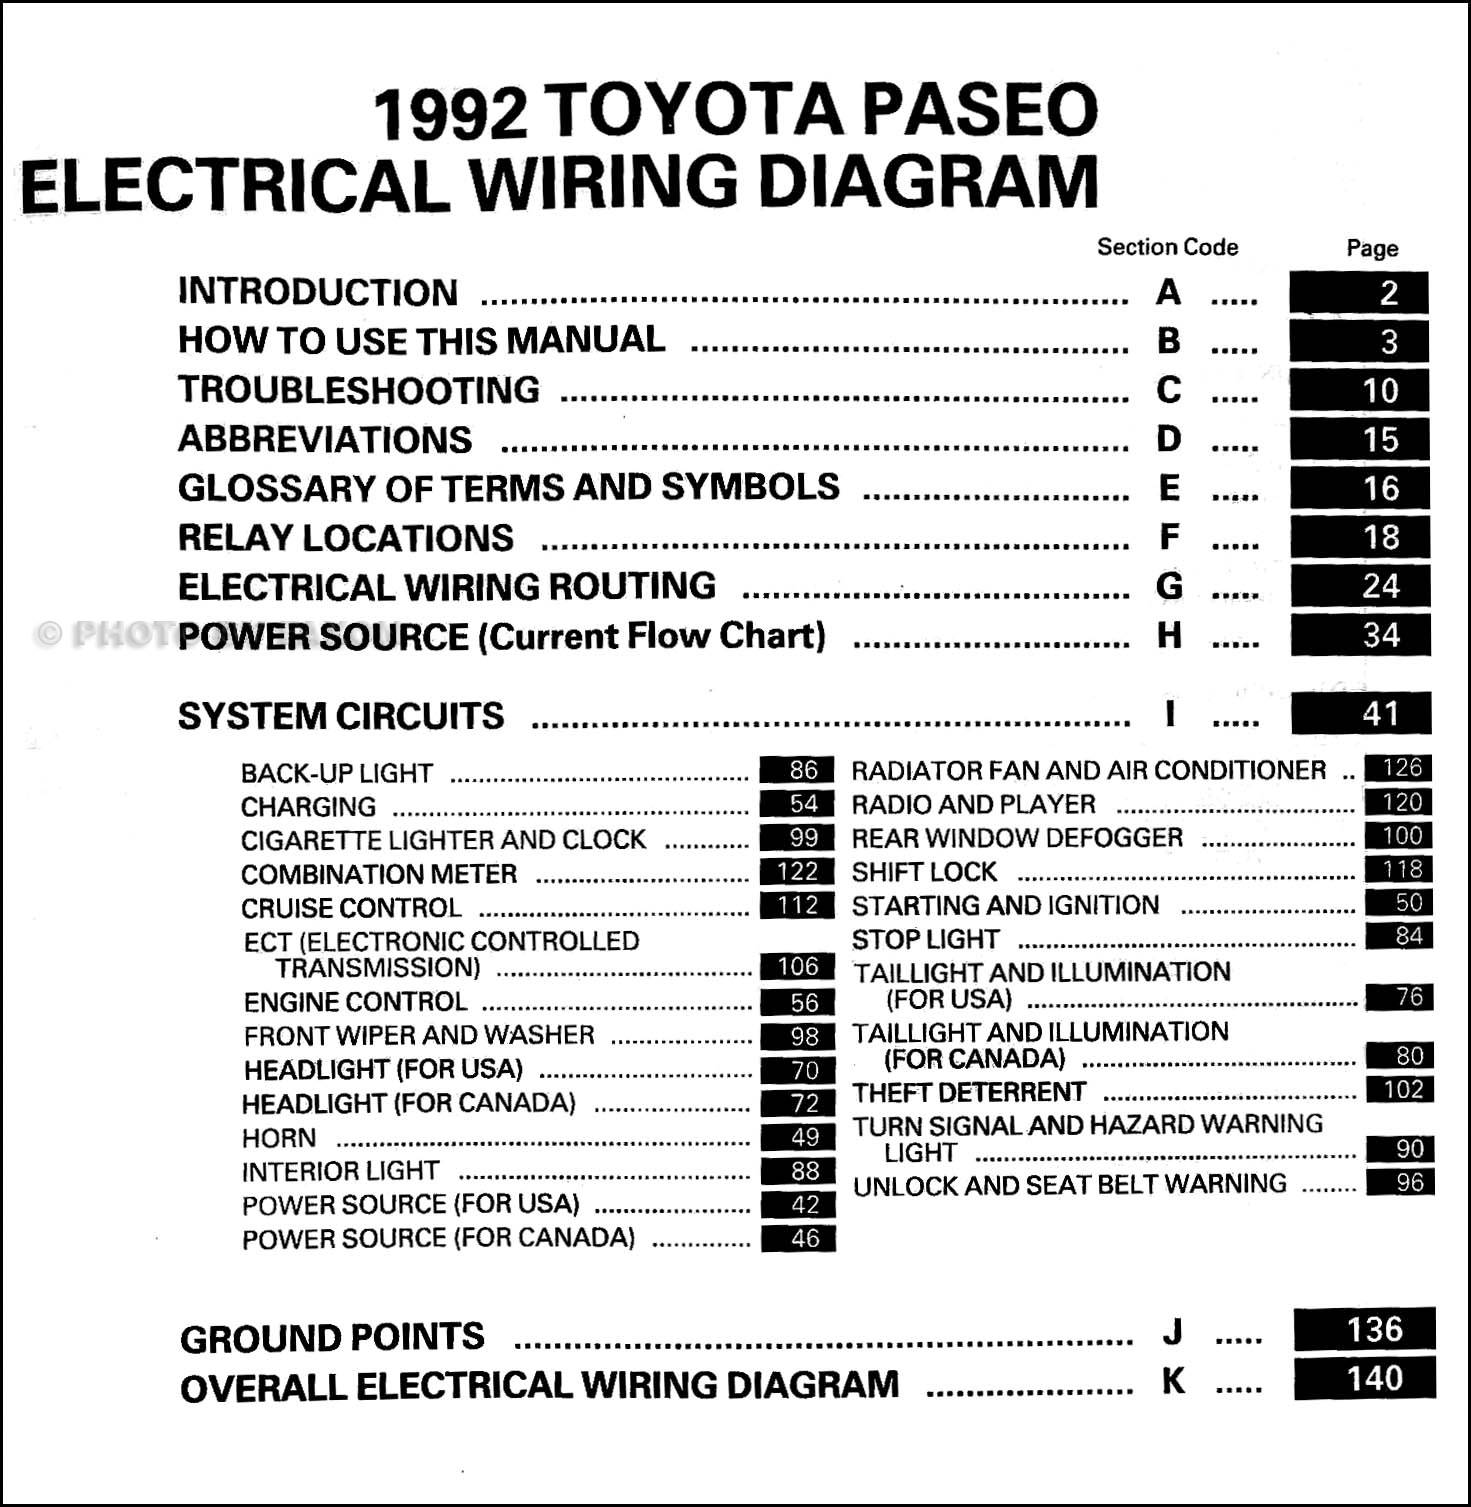 1992 Toyota Camry Wiring Diagram Manual Original Just Another Cooling Fans Library Rh 4 Seo Memo De Main Relay Battery To From Fan